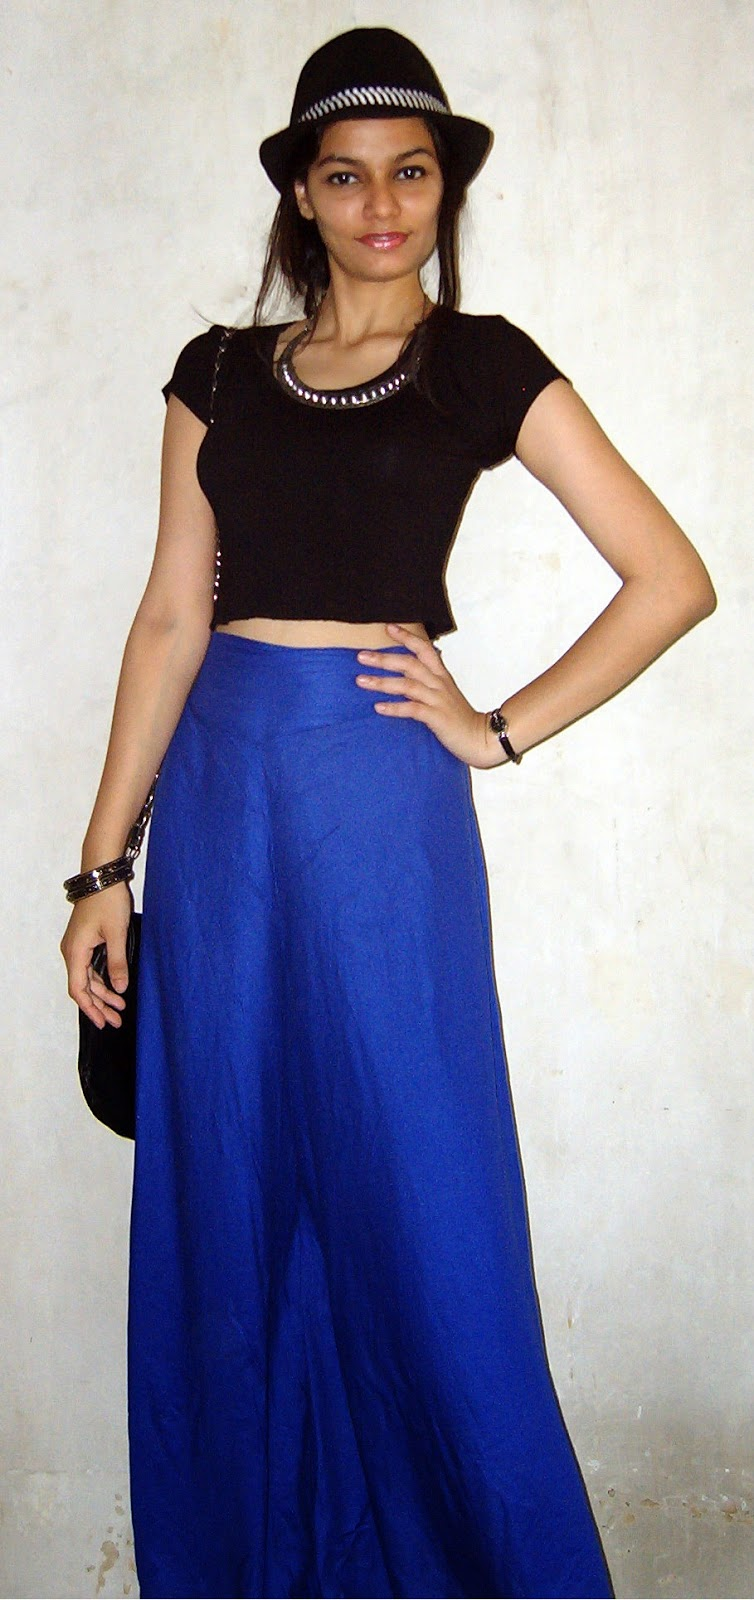 how to wear palazzo pants, mumbai streetstyle, how to wear croptops, bright blue palazzo pants, how to wear hats, look for less, mumbai street shopping, colaba causeway street shopping, spiked necklace, palazzo pants